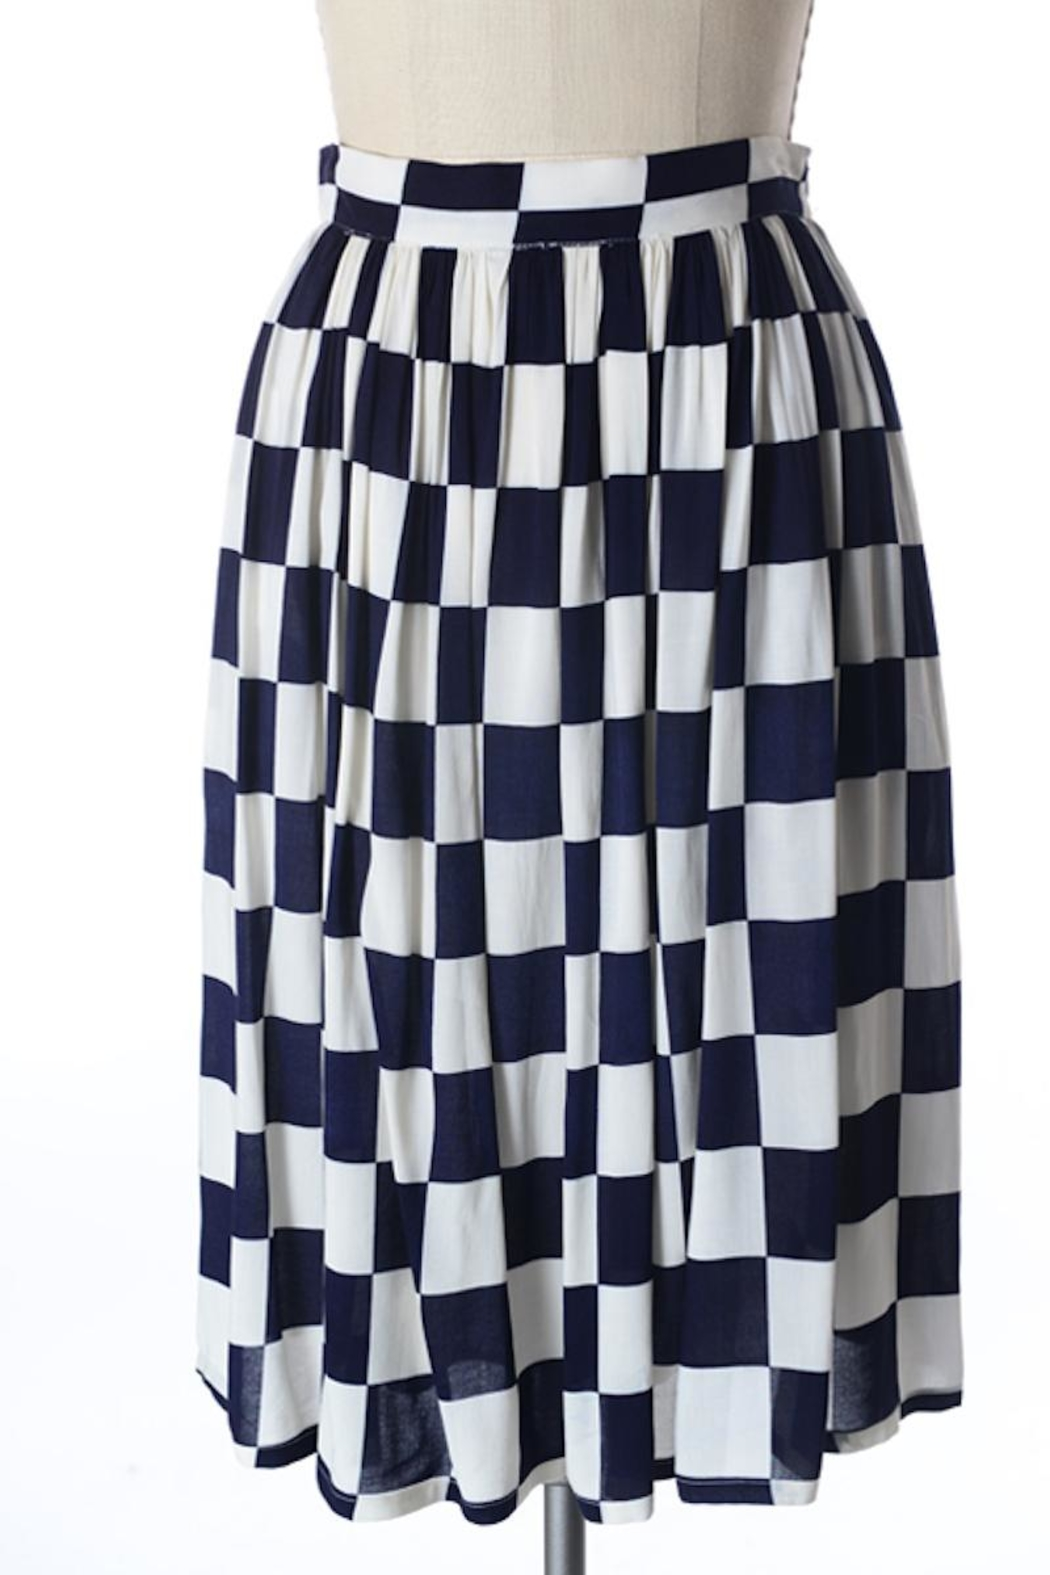 Comme Toi Navy Checkered Skirt - Main Image